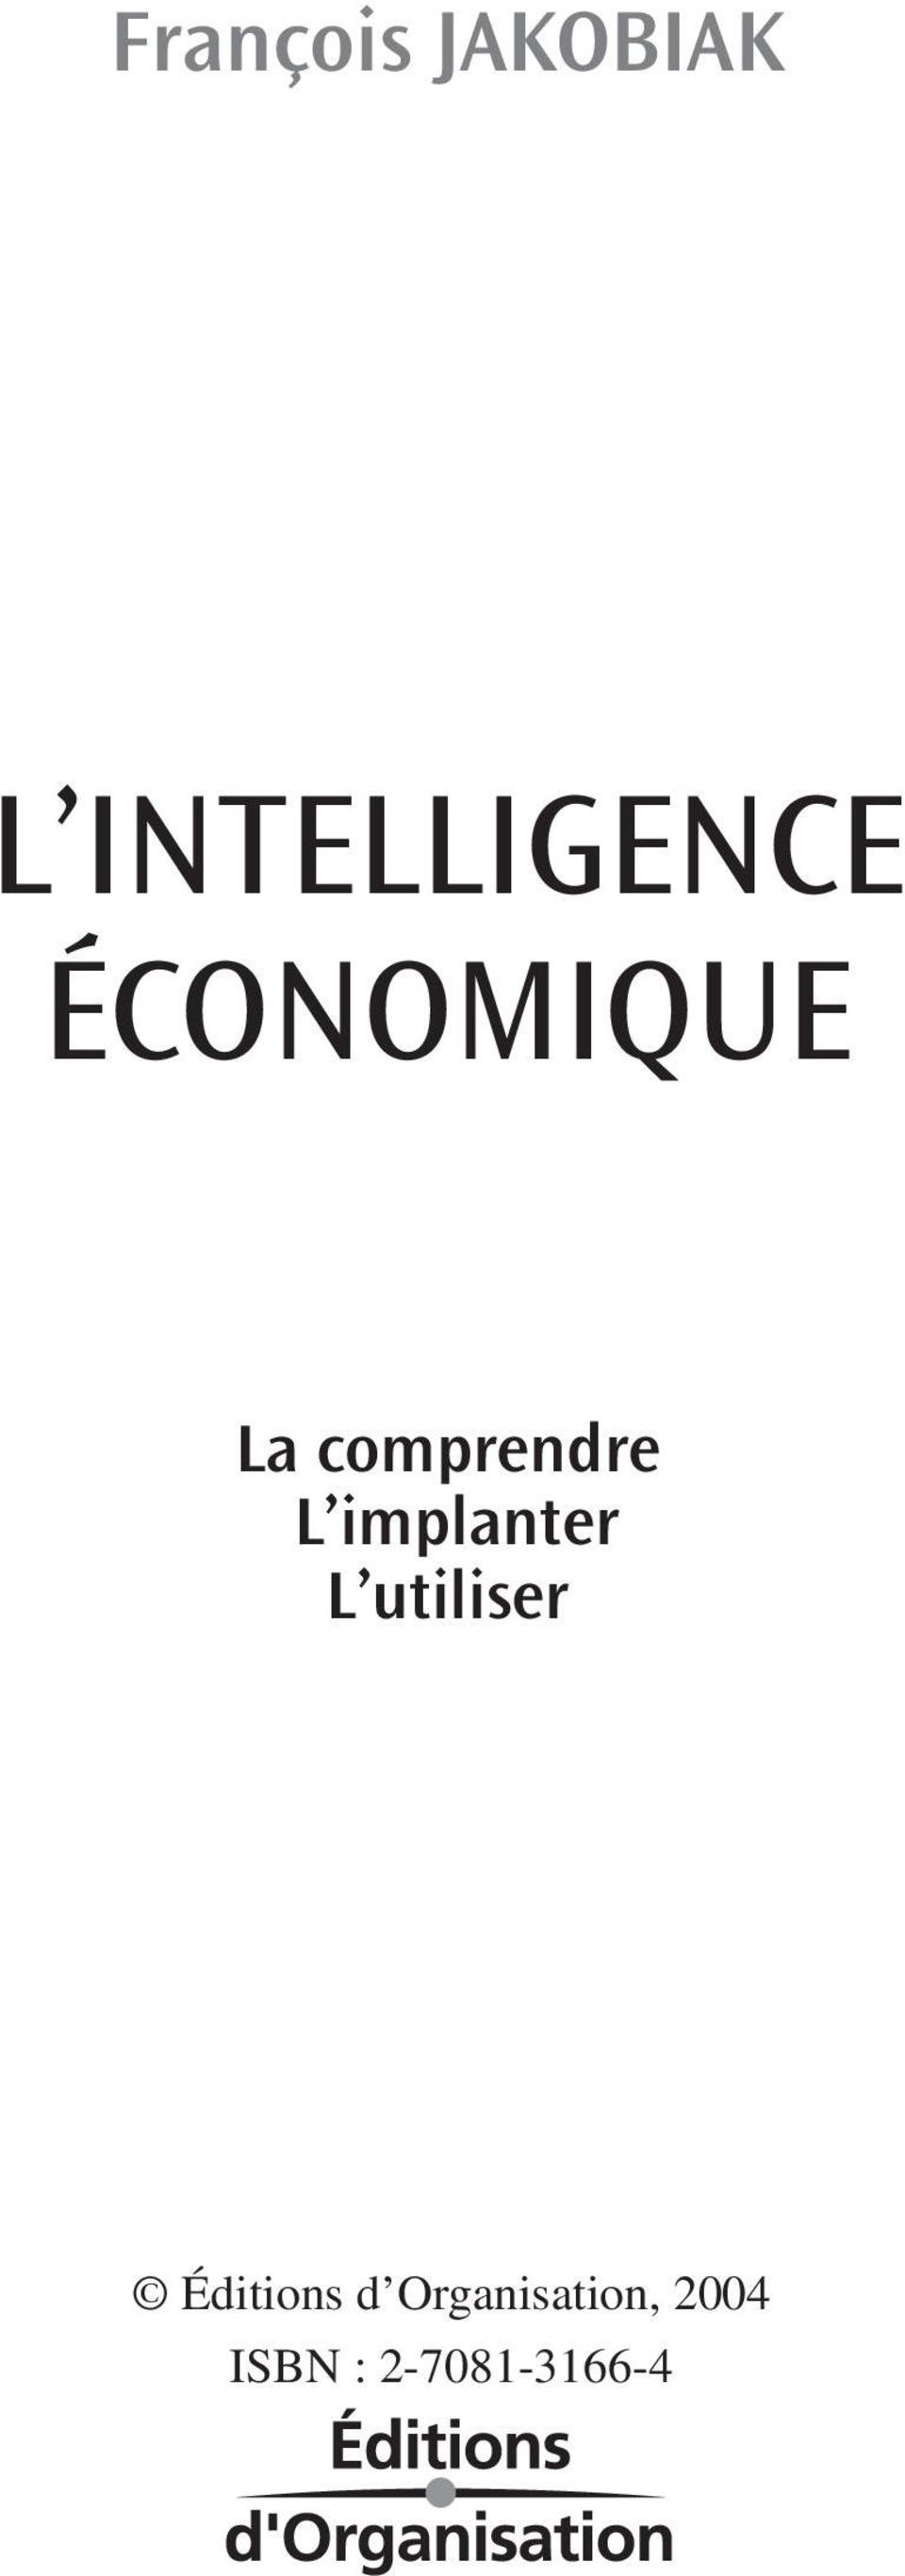 comprendre L implanter L